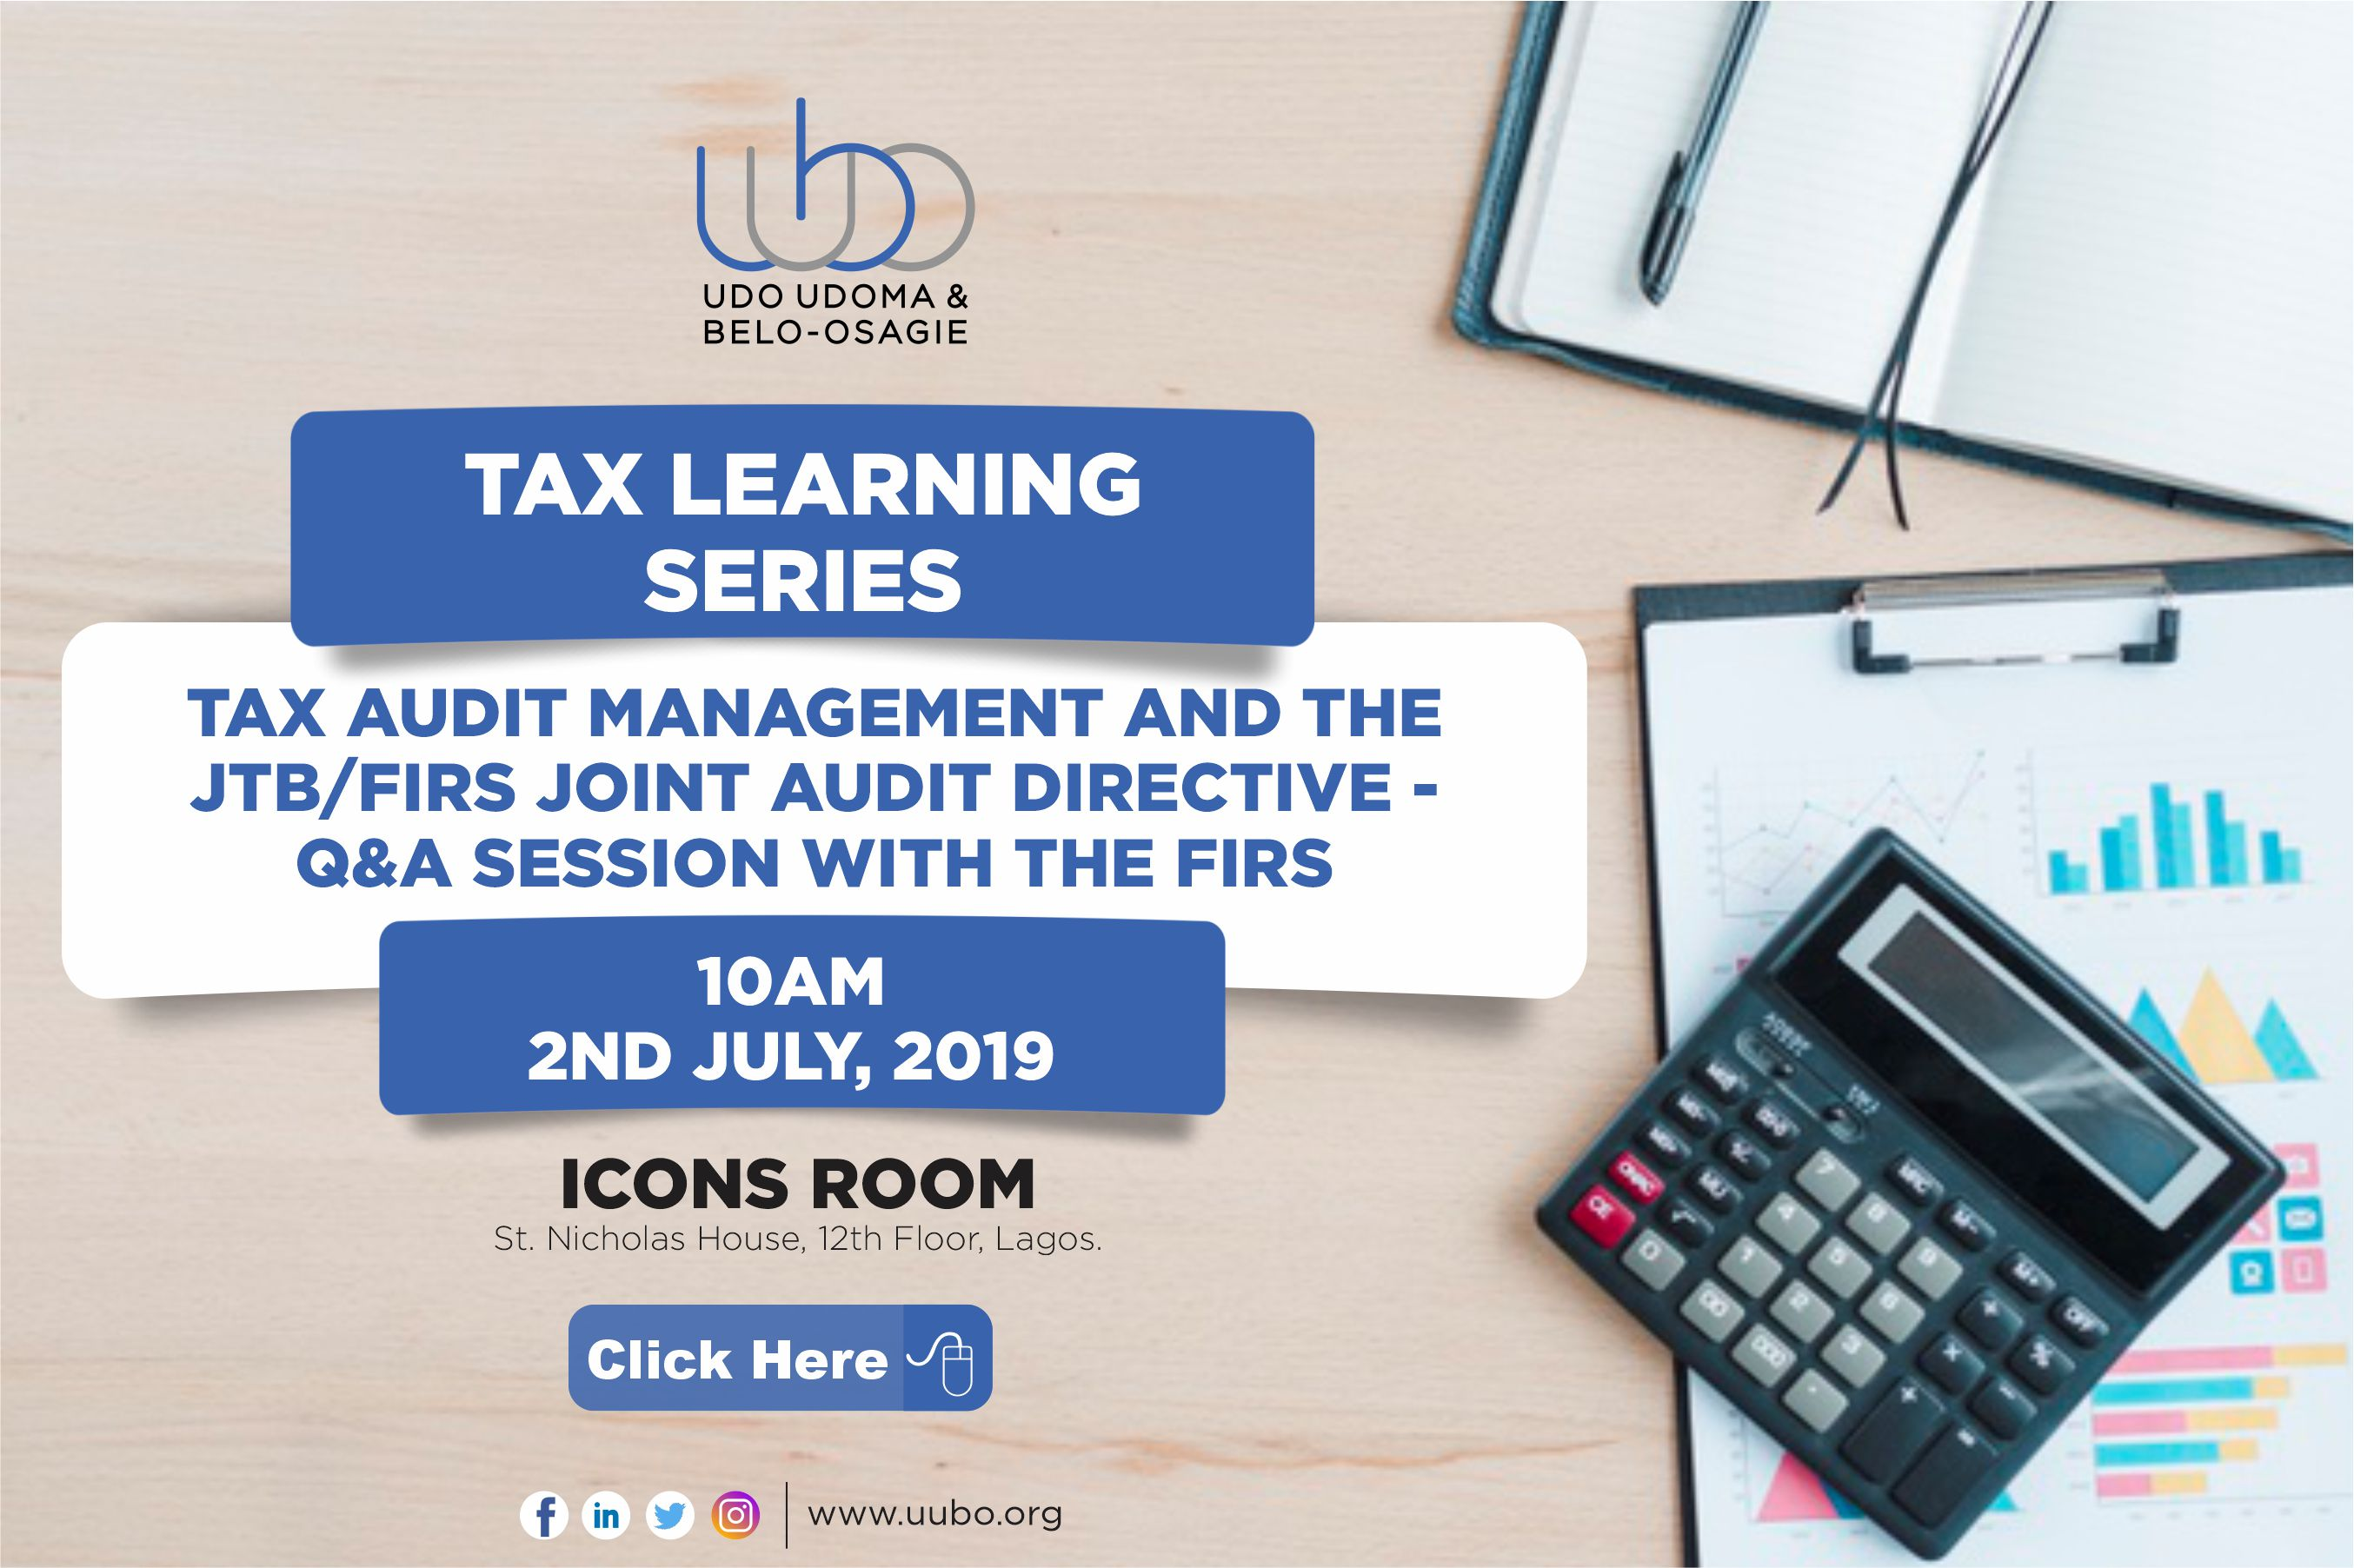 TAX LEARNING SERIES